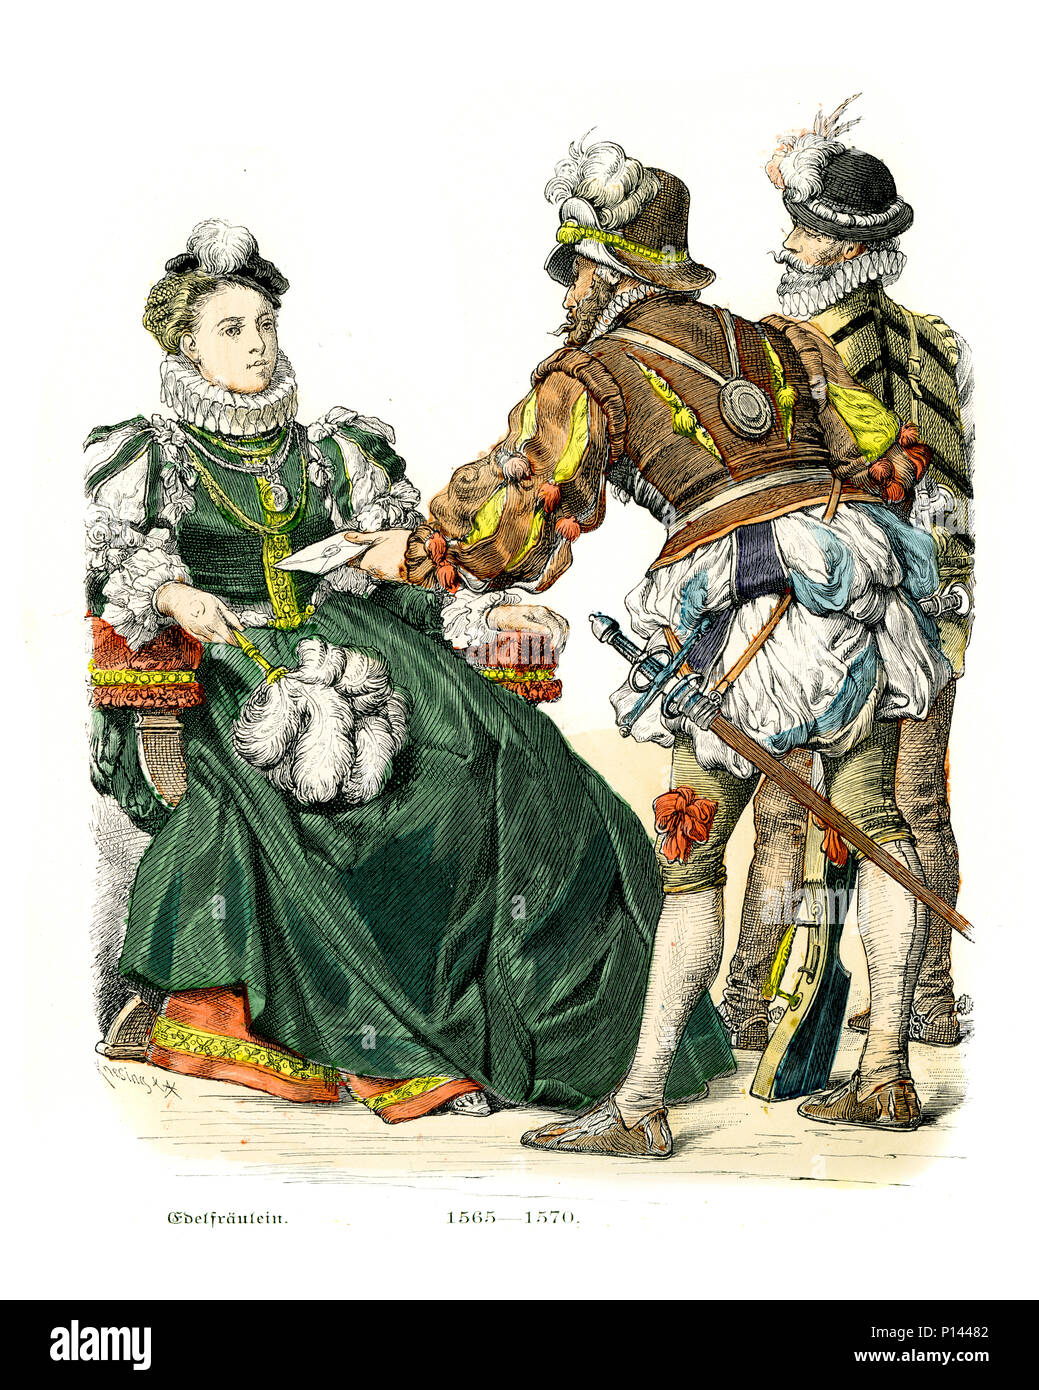 Vintage engraving of History of Fashion, Costumes of Germany 16th Century. Unmarried lady of hish rank and soldiers, 1565 to 1570 - Stock Image